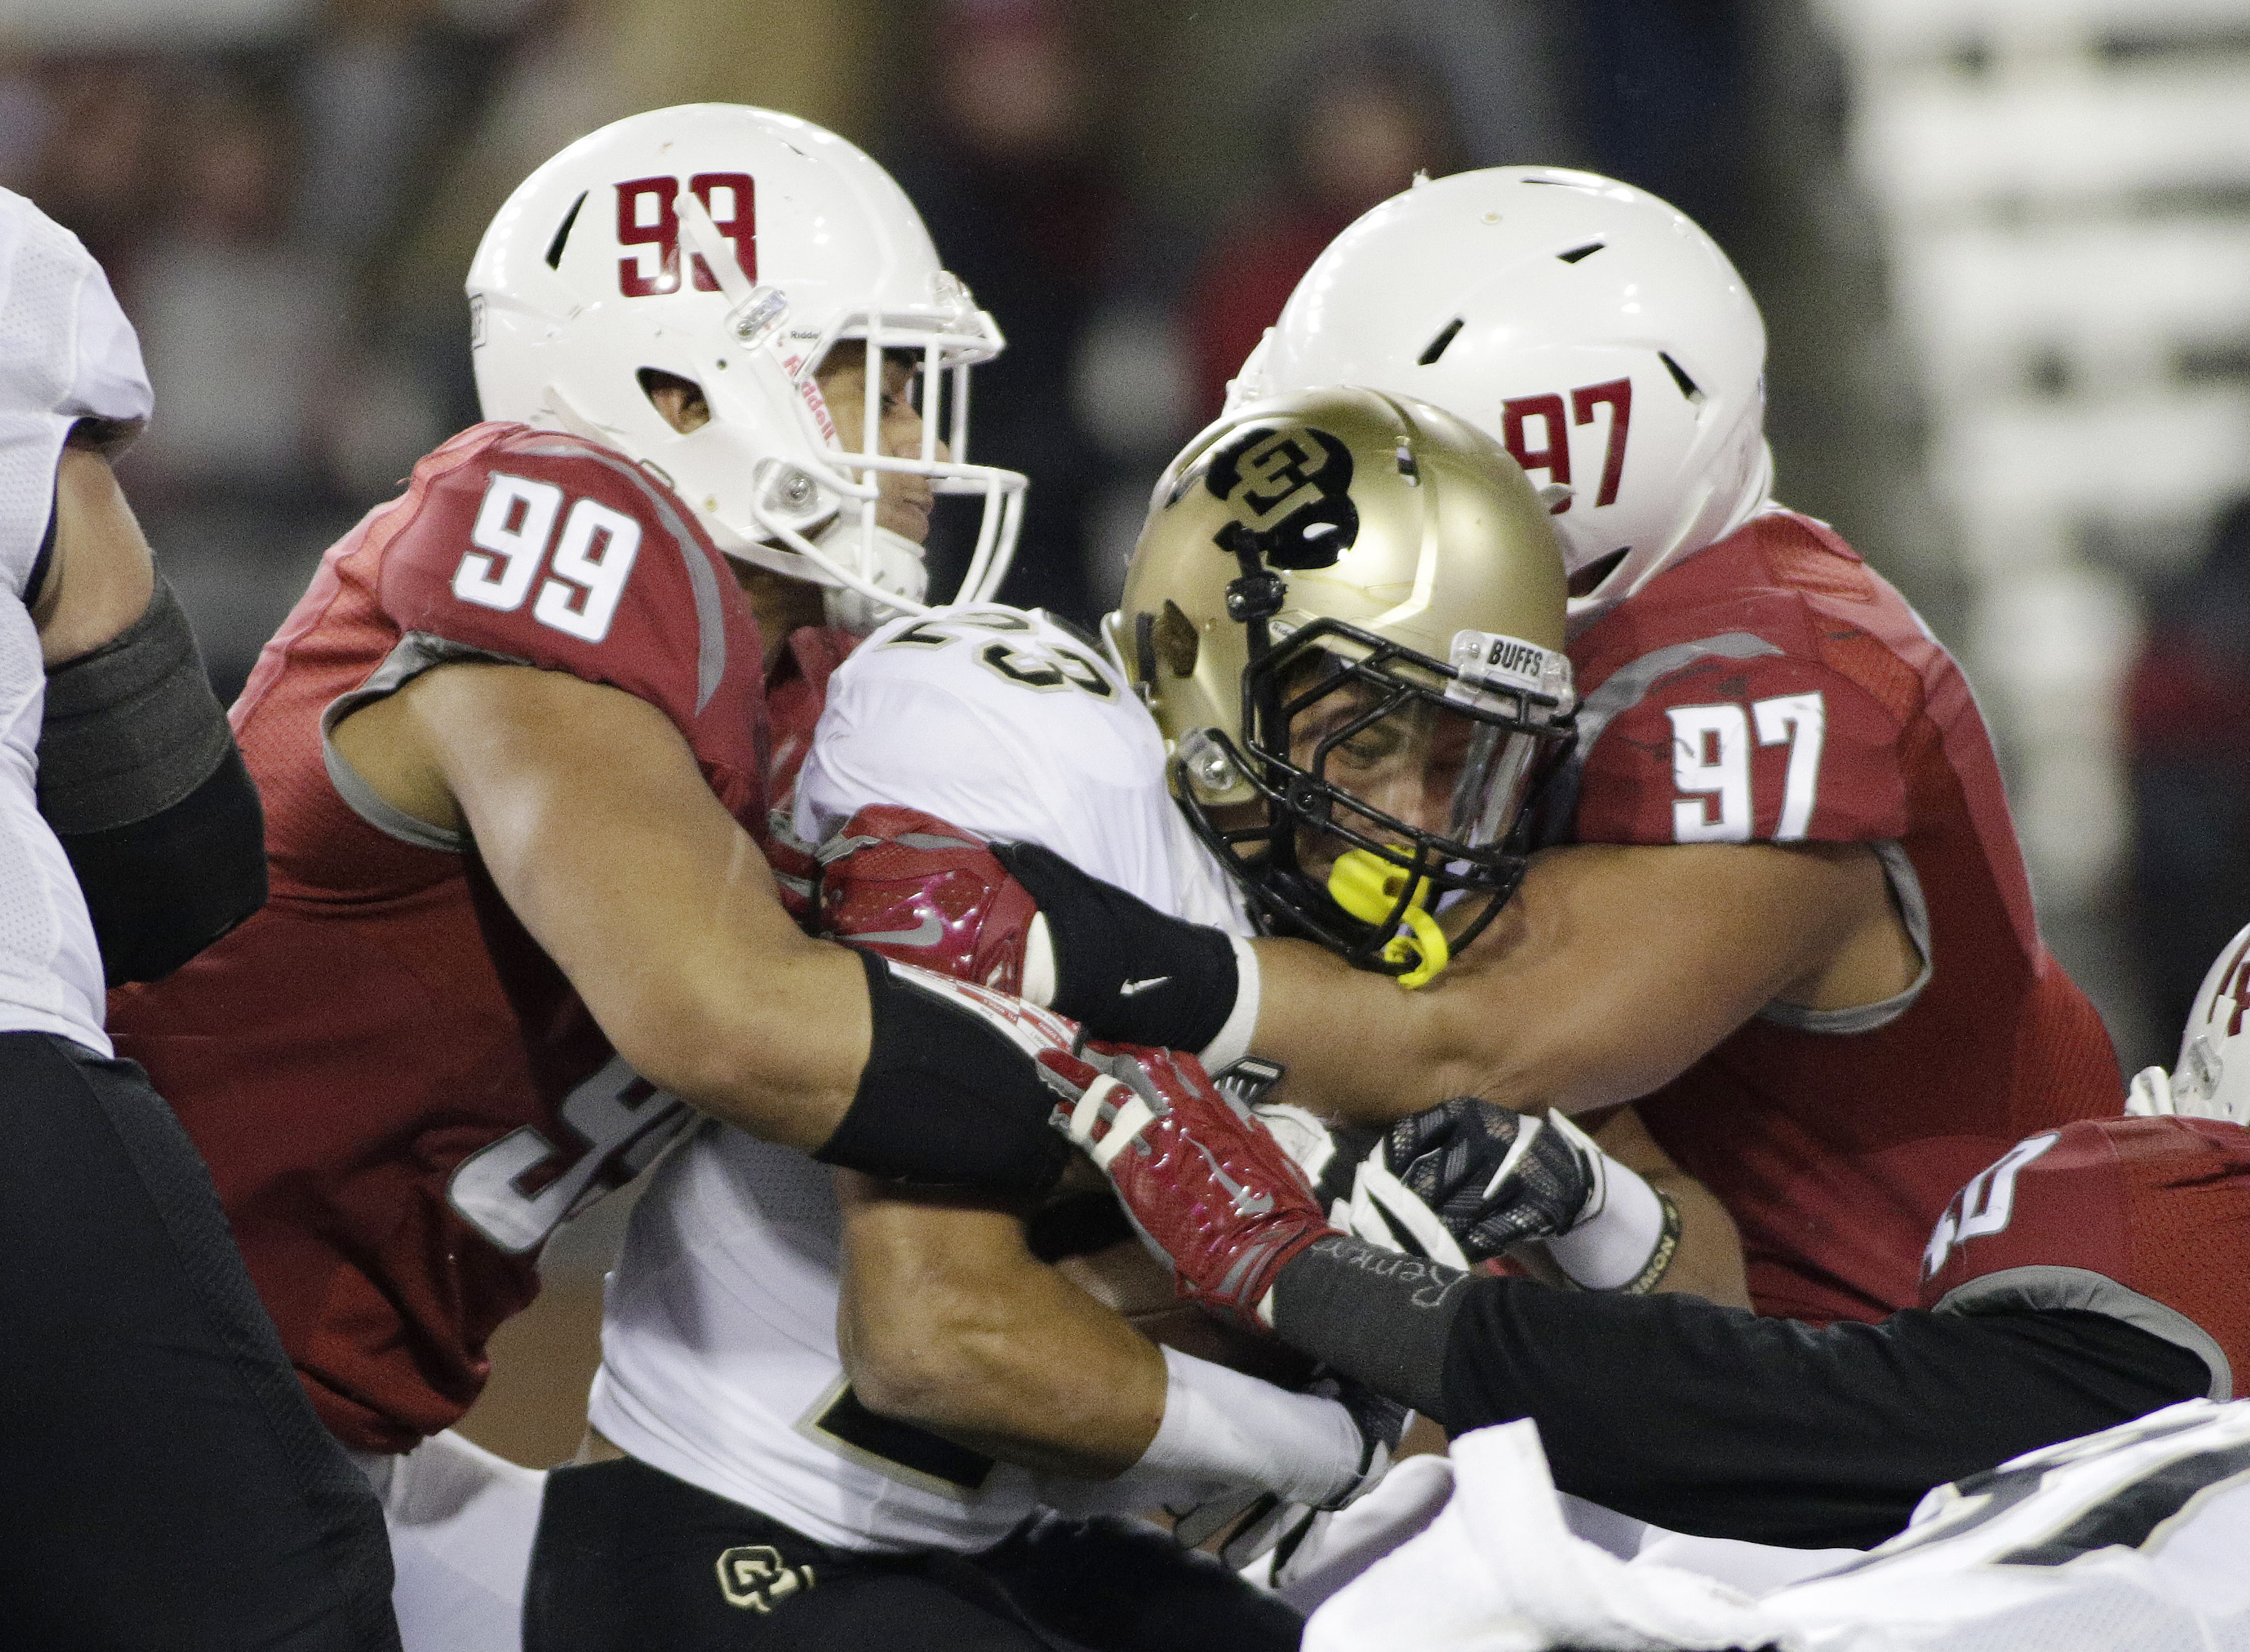 Washington State defensive linemen Darryl Paulo (99) and Destiny Vaeao (97) take down Colorado running back Phillip Lindsay (23) during the first half of an NCAA college football game, Saturday, Nov. 21, 2015, in Pullman, Wash. (AP Photo/Young Kwak)